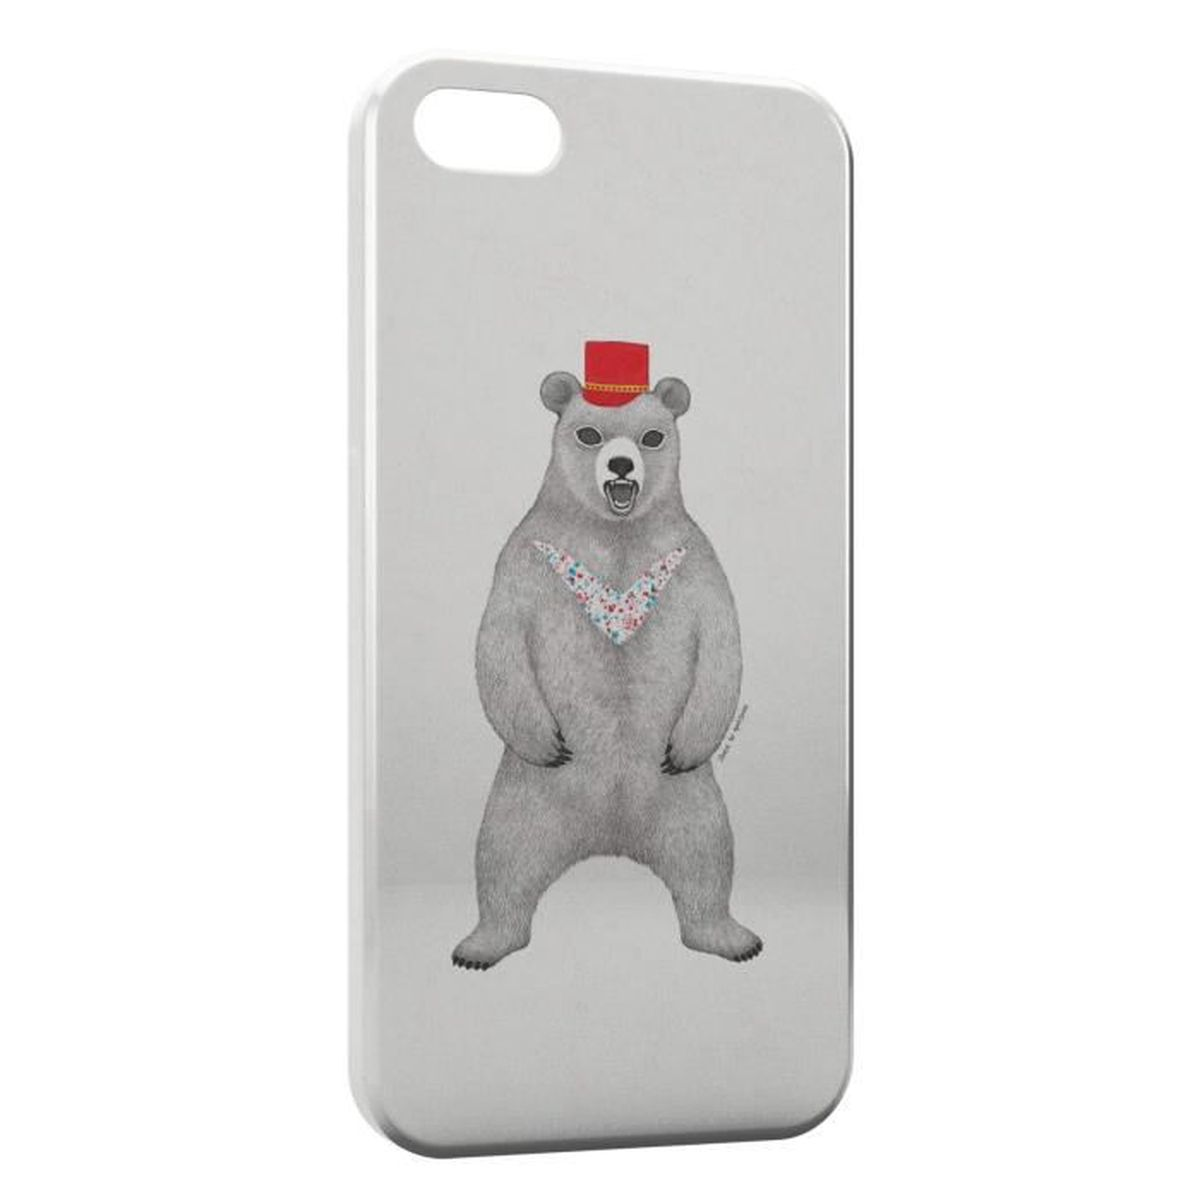 coque iphone 7 ours style design